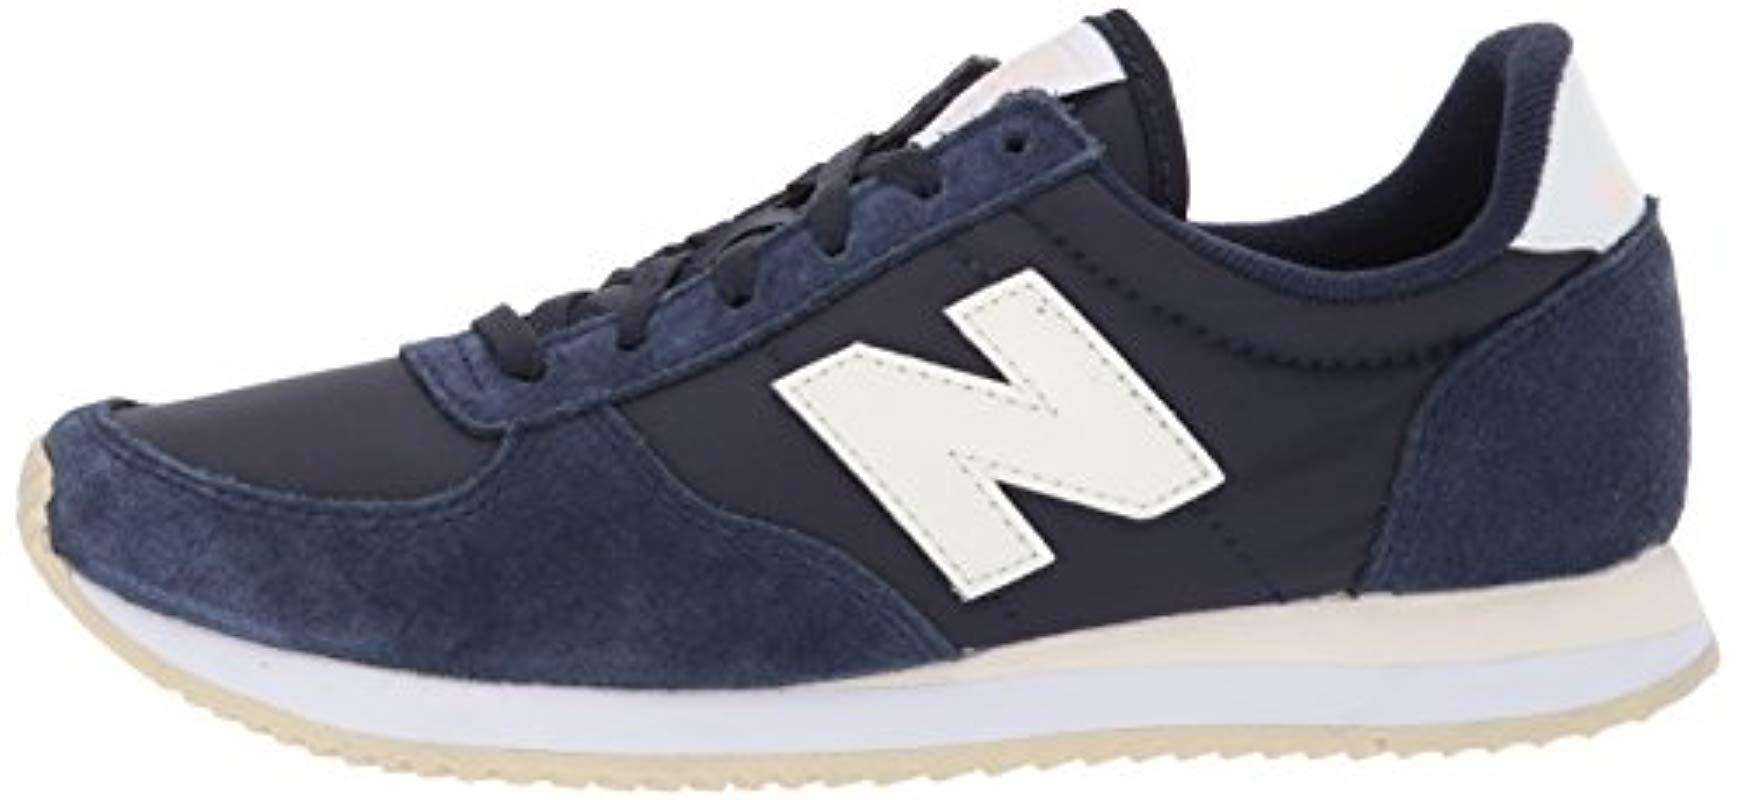 New Balance Synthetic 220 Classic V1 Sneaker in Black/White ...